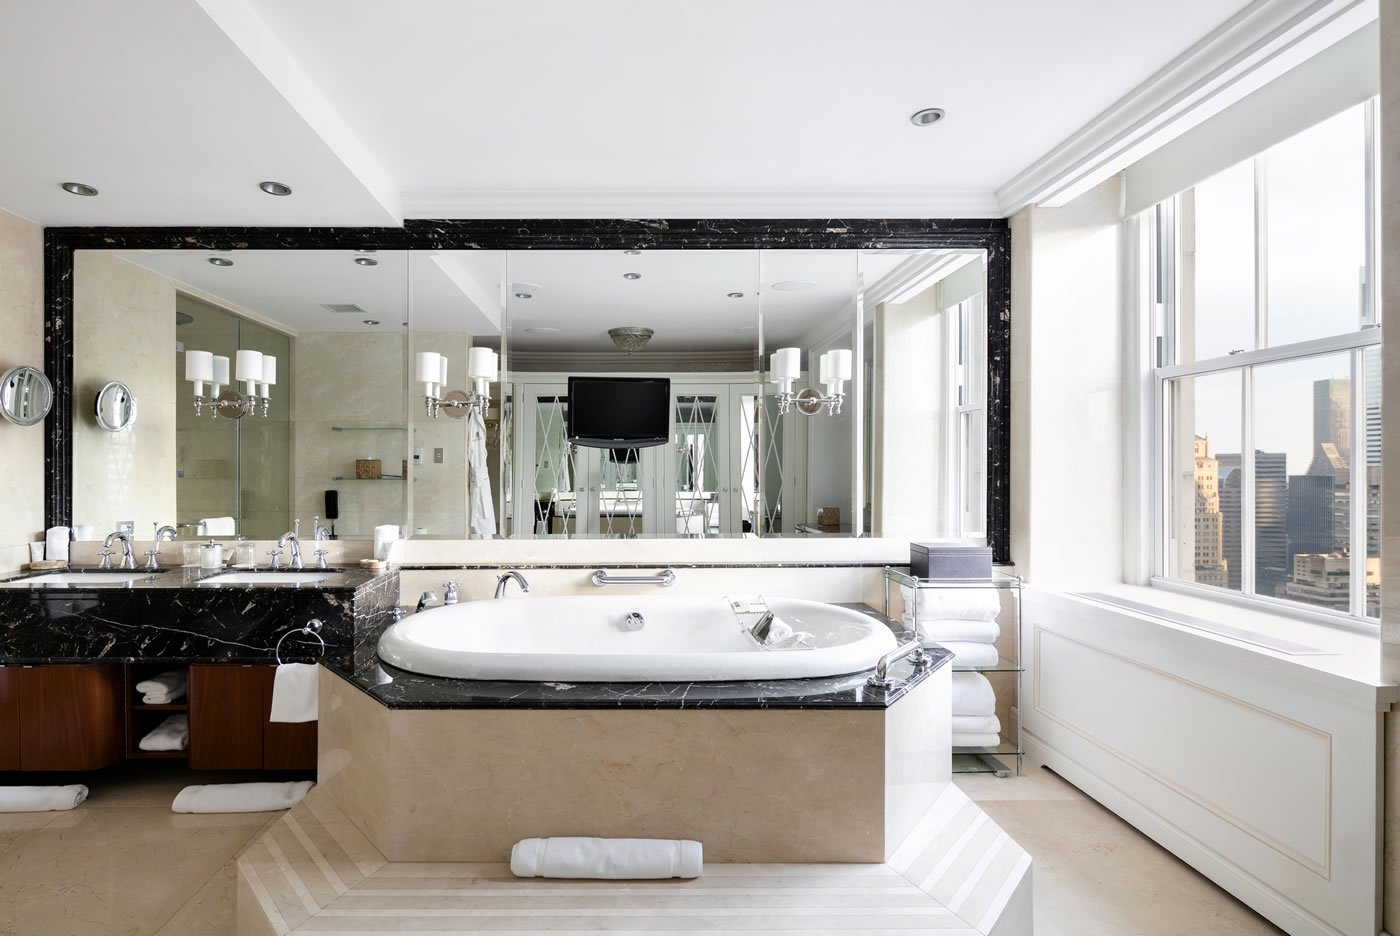 In a mood to splurge here are the 7 most decadent suites for Masters toilet suites